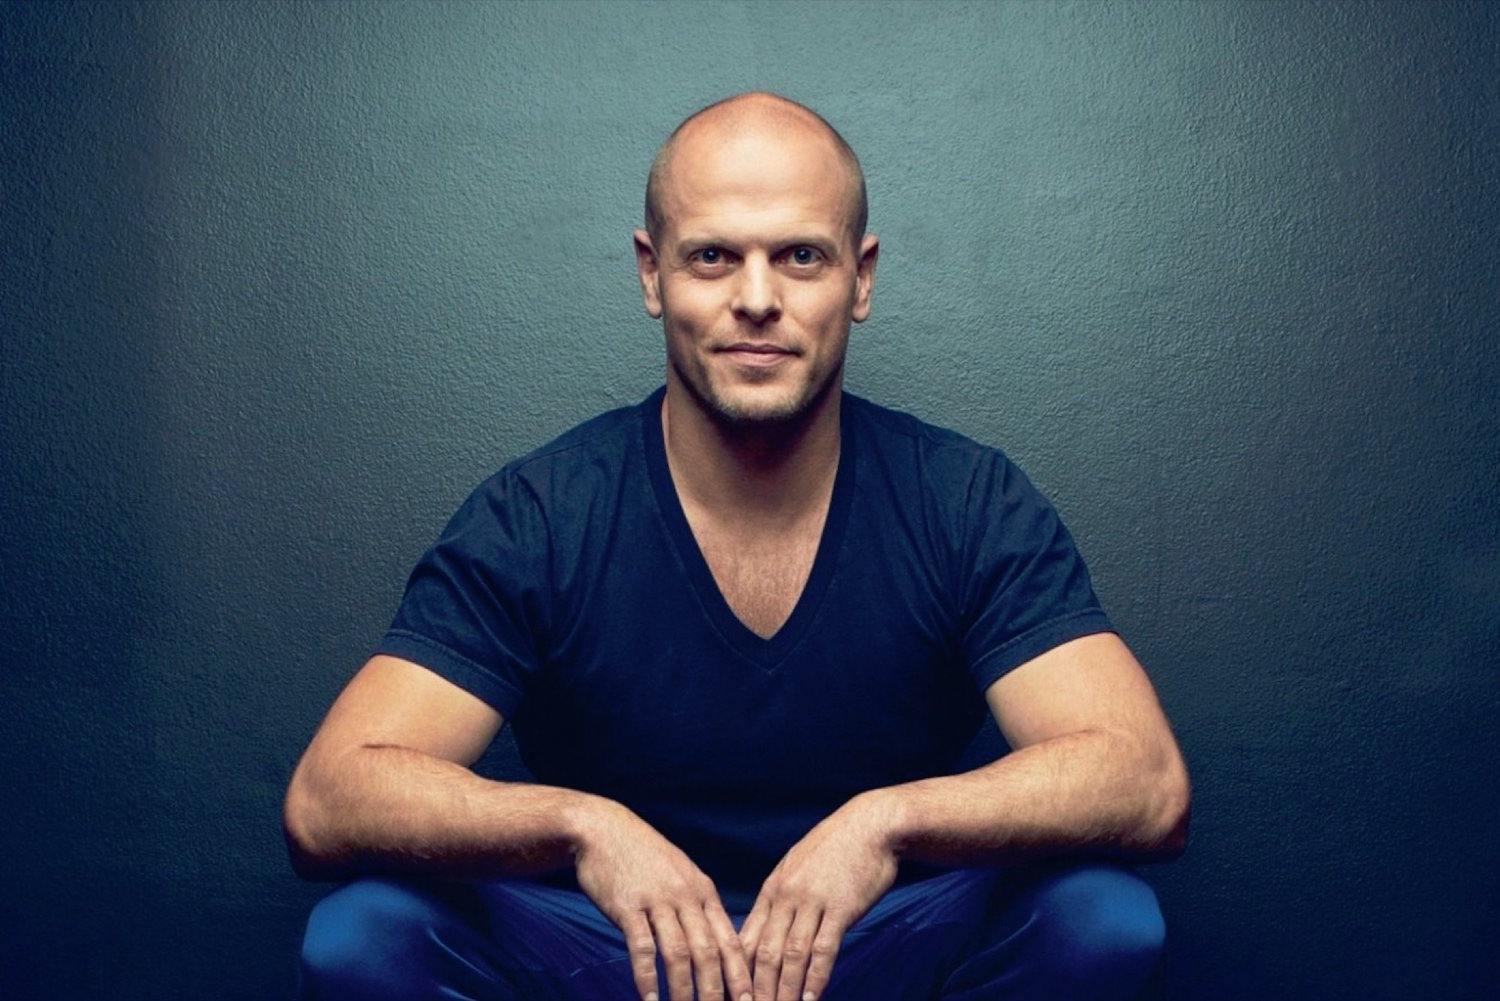 Tim ferriss experiment online dating